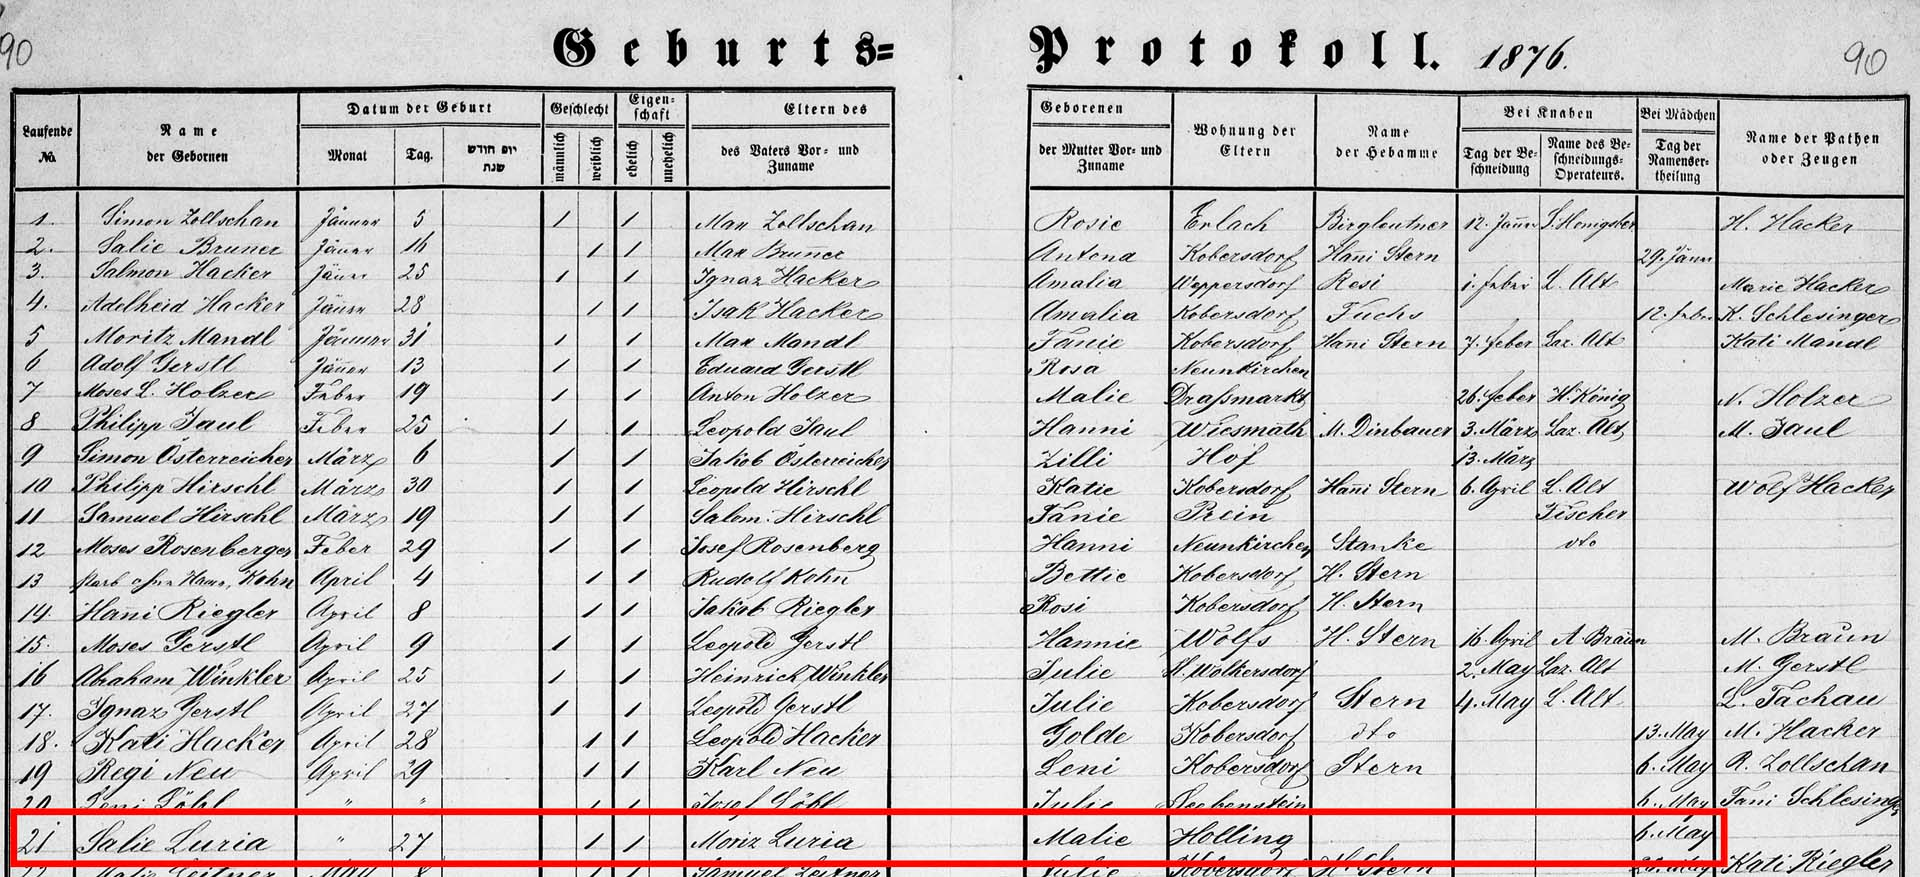 Birth entry Sali Luria, 27 April 1876, Kobersdorf